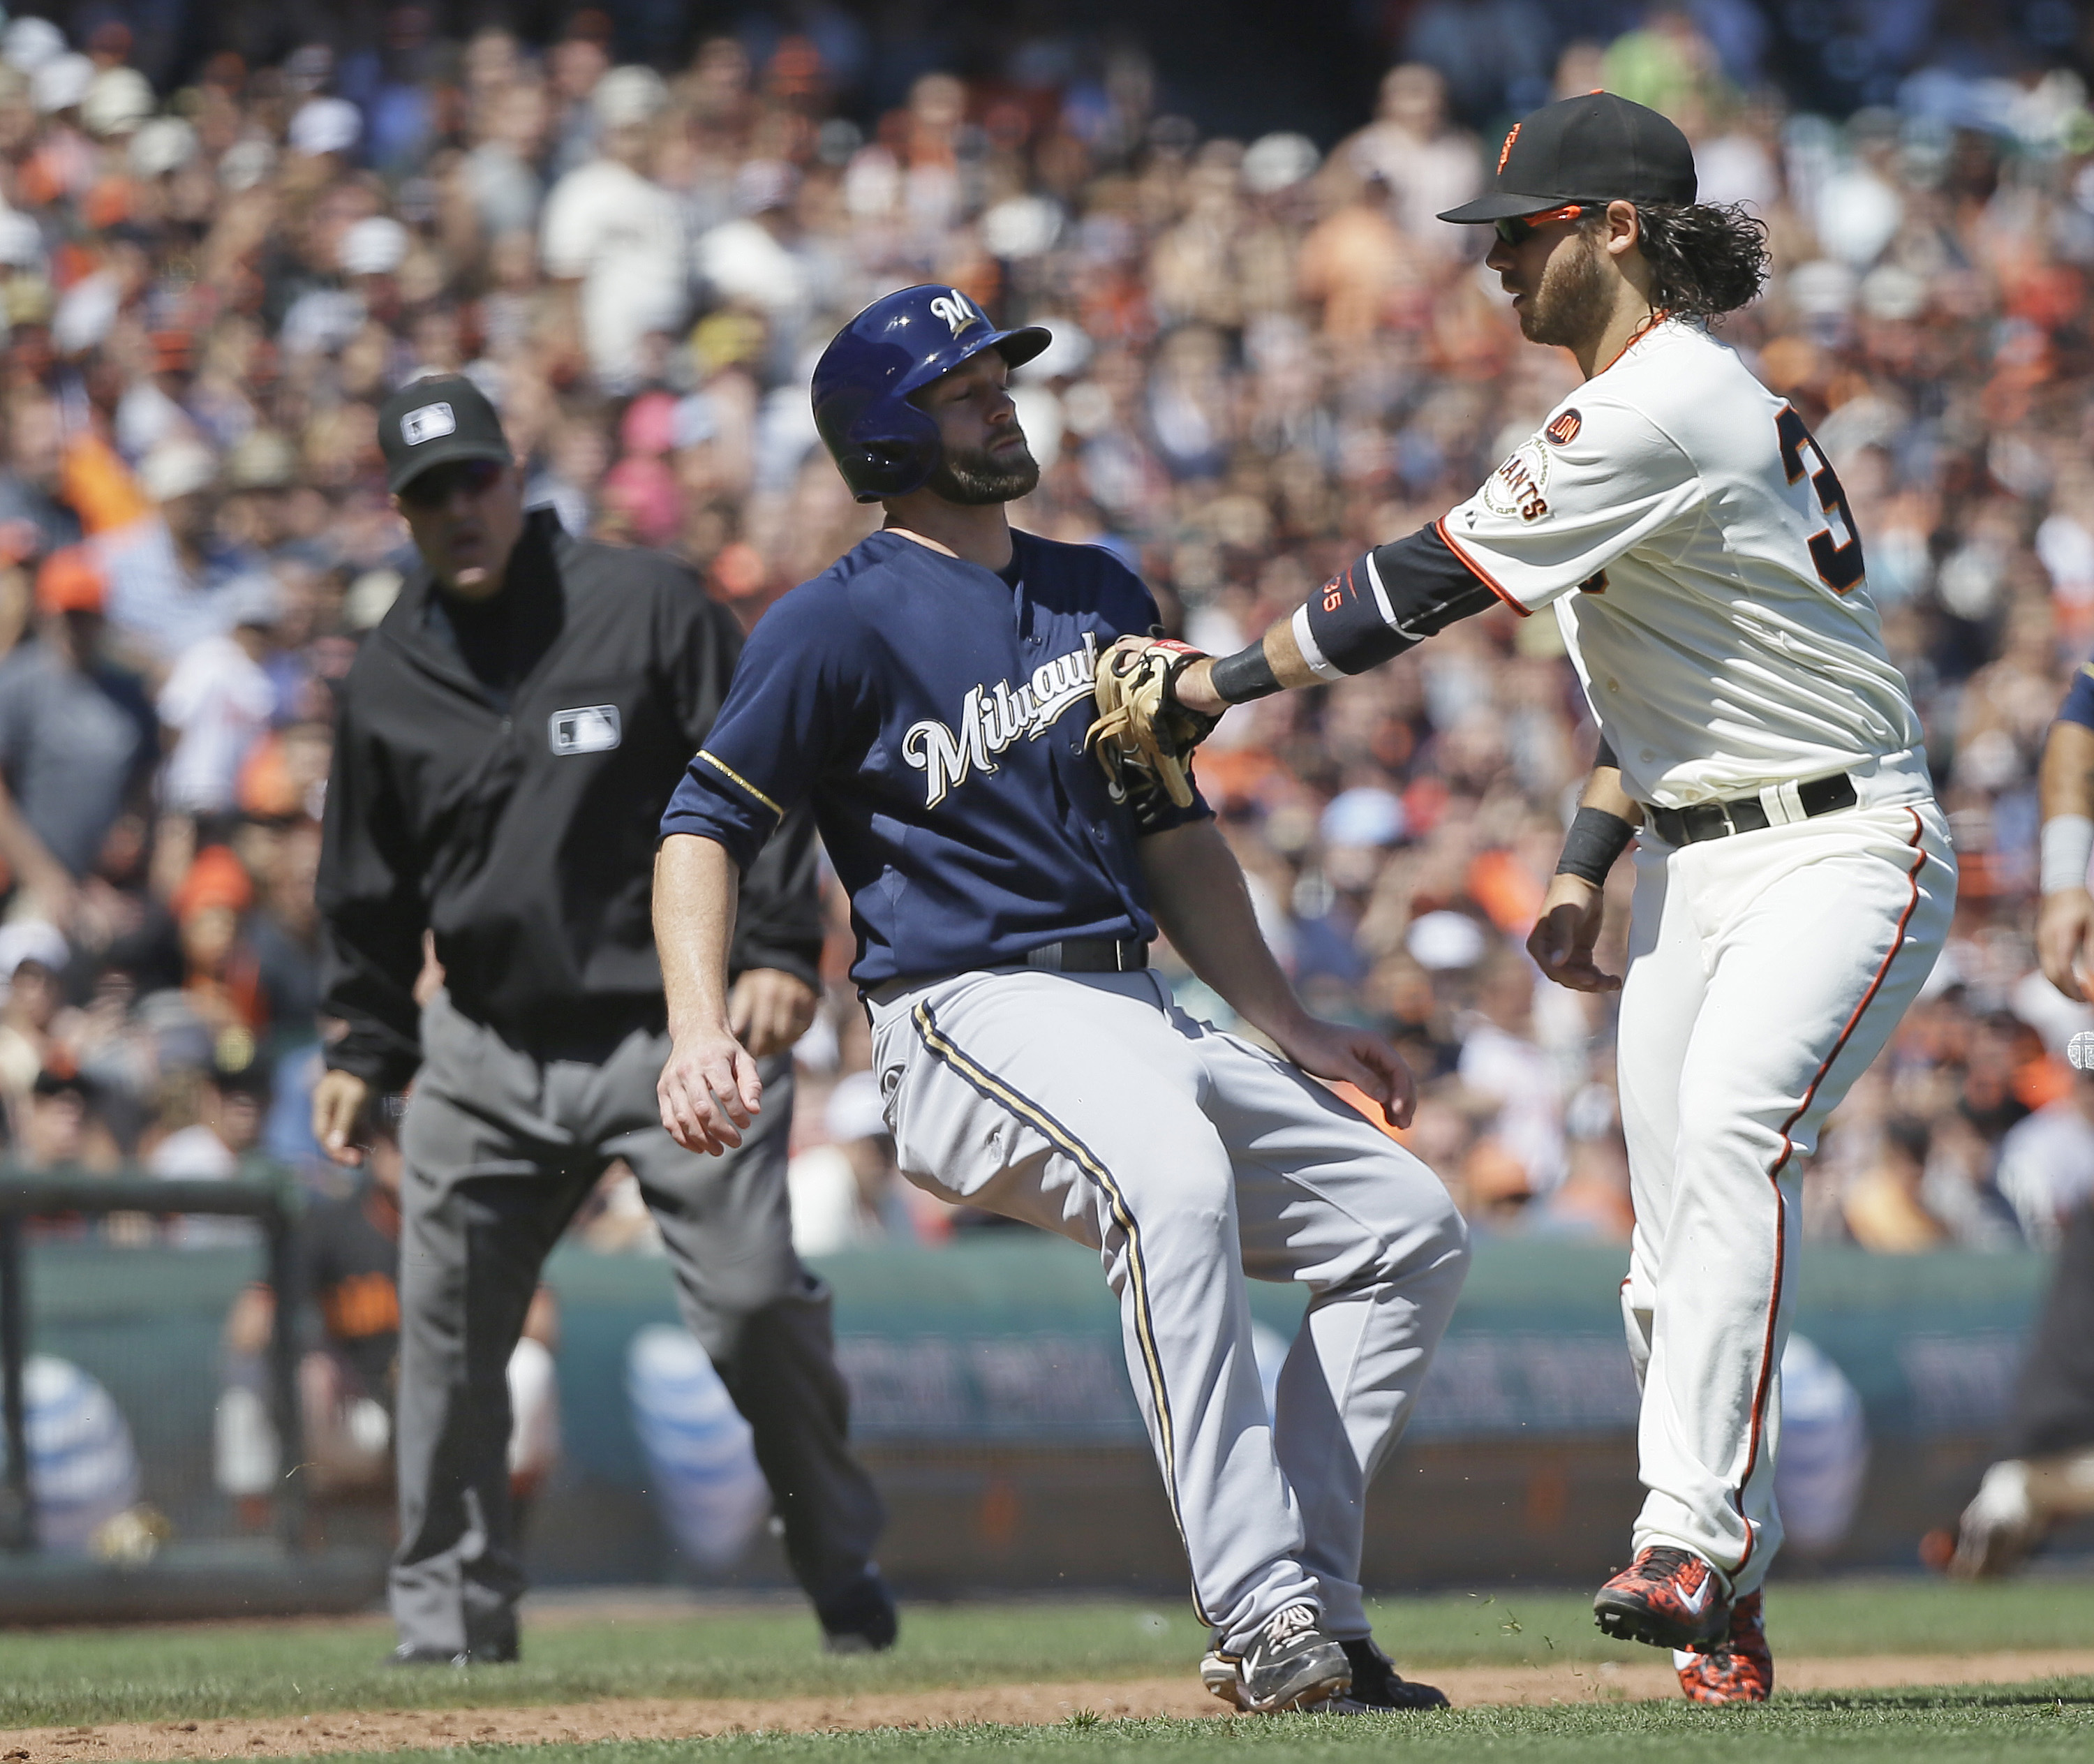 Milwaukee Brewers' Shane Peterson, left, is tagged out by San Francisco Giants shortstop Brandon Crawford on a rundown between home plate and third base on a fielder's choice in the eighth inning of a baseball game, Wednesday, July 29, 2015, in San Franci